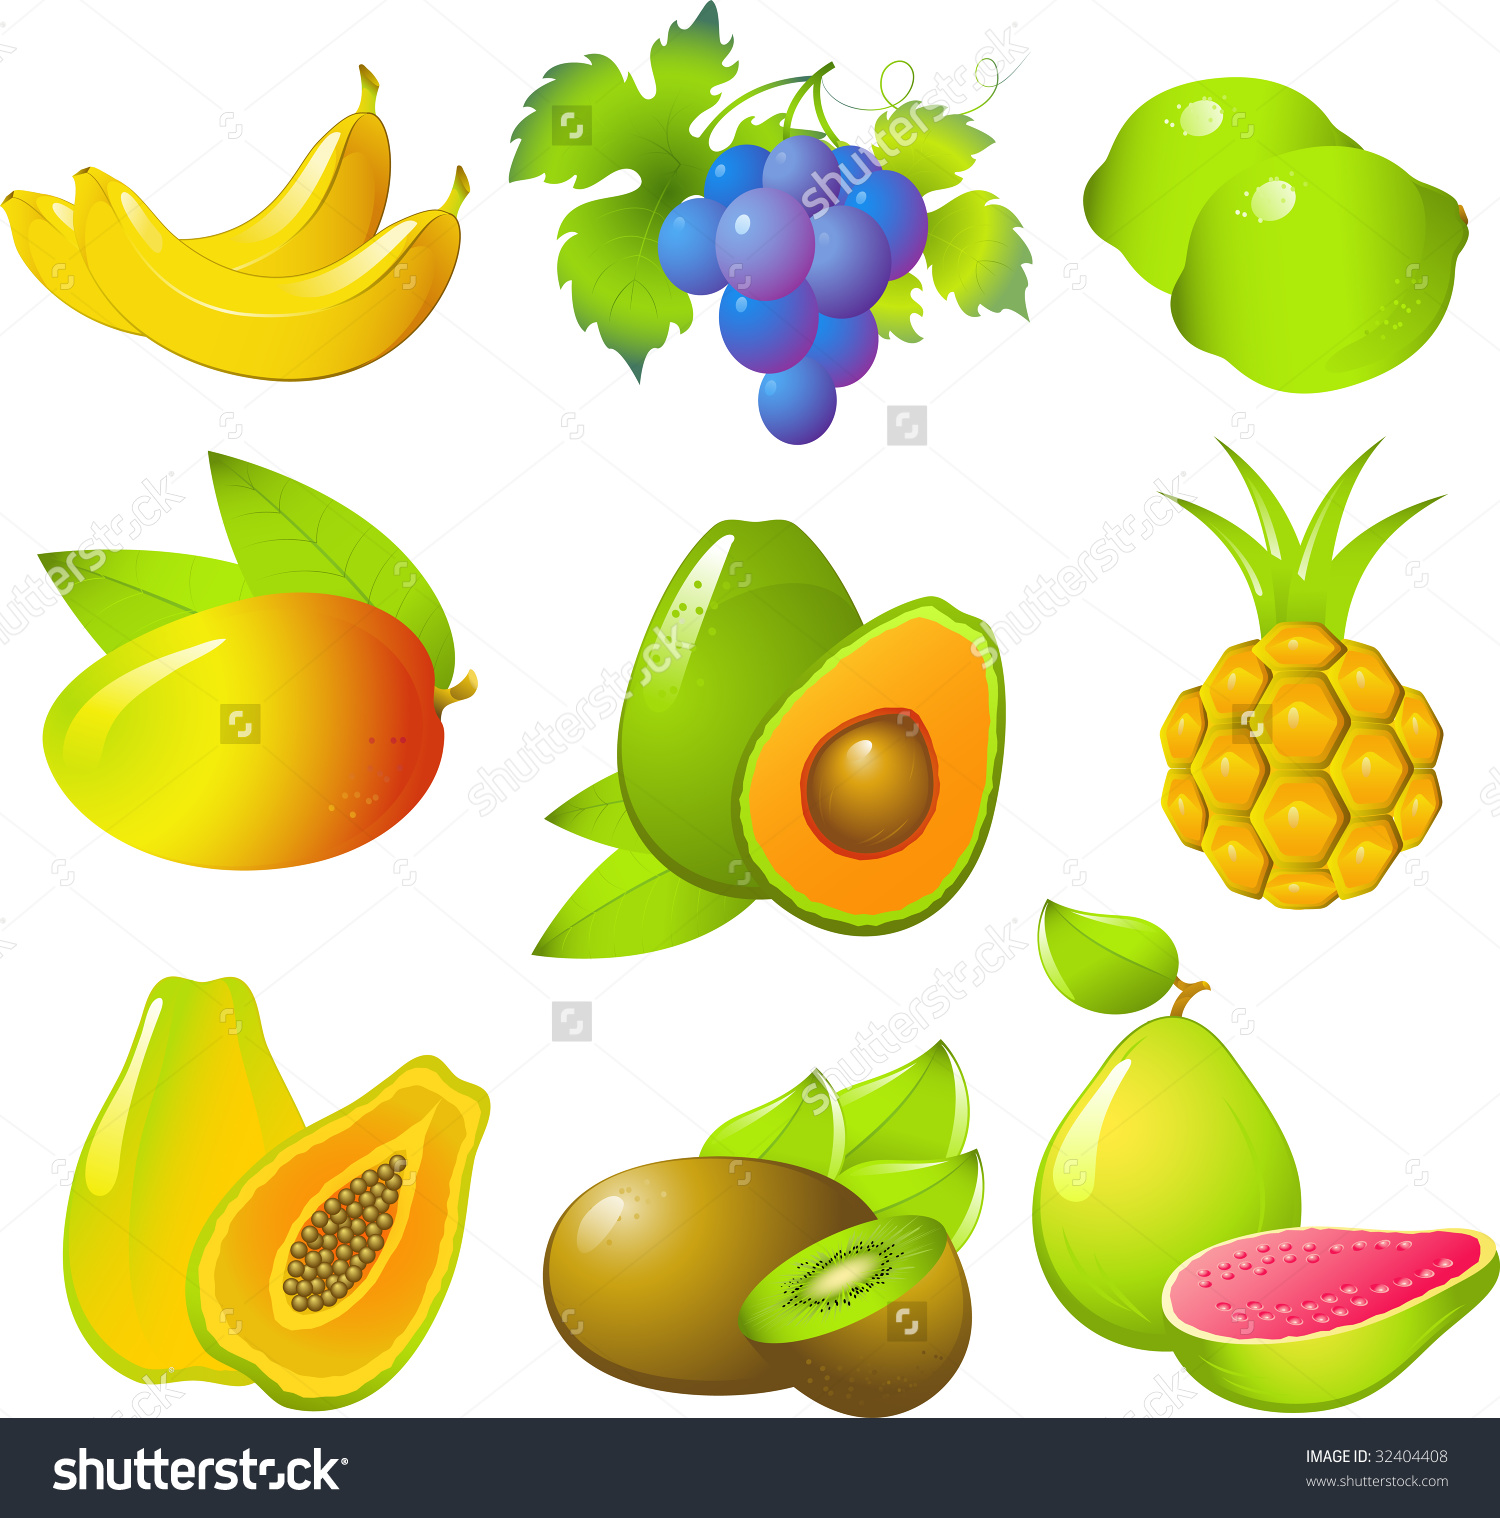 Vector Images Beautiful Exotic Fruits Bananas Stock Vector.